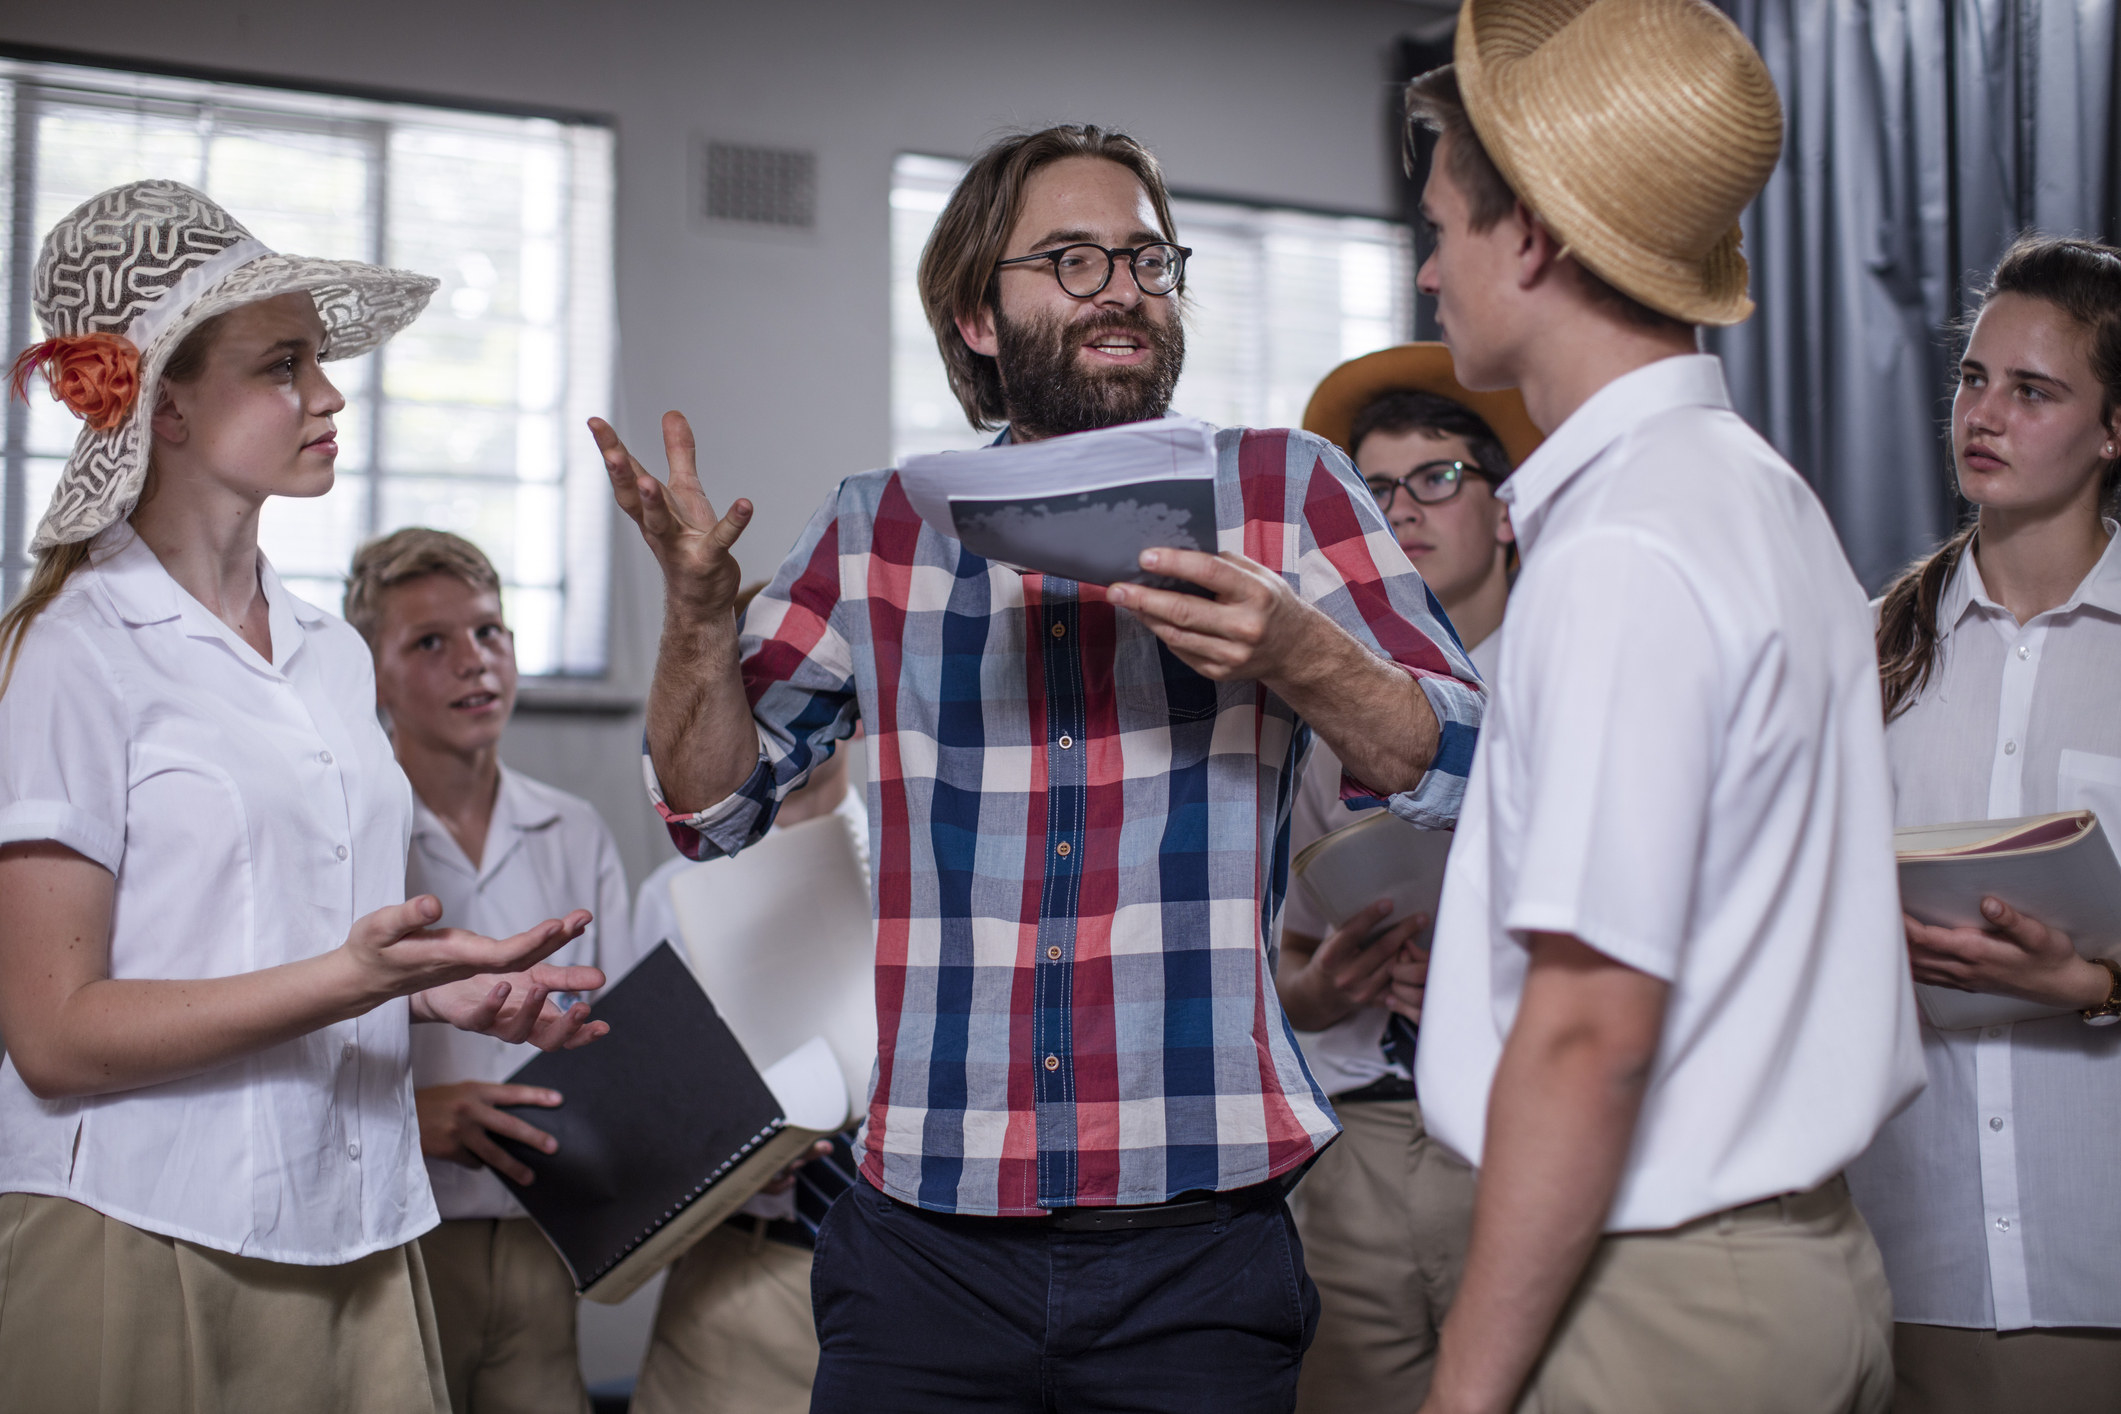 A theater teacher directing students in a play